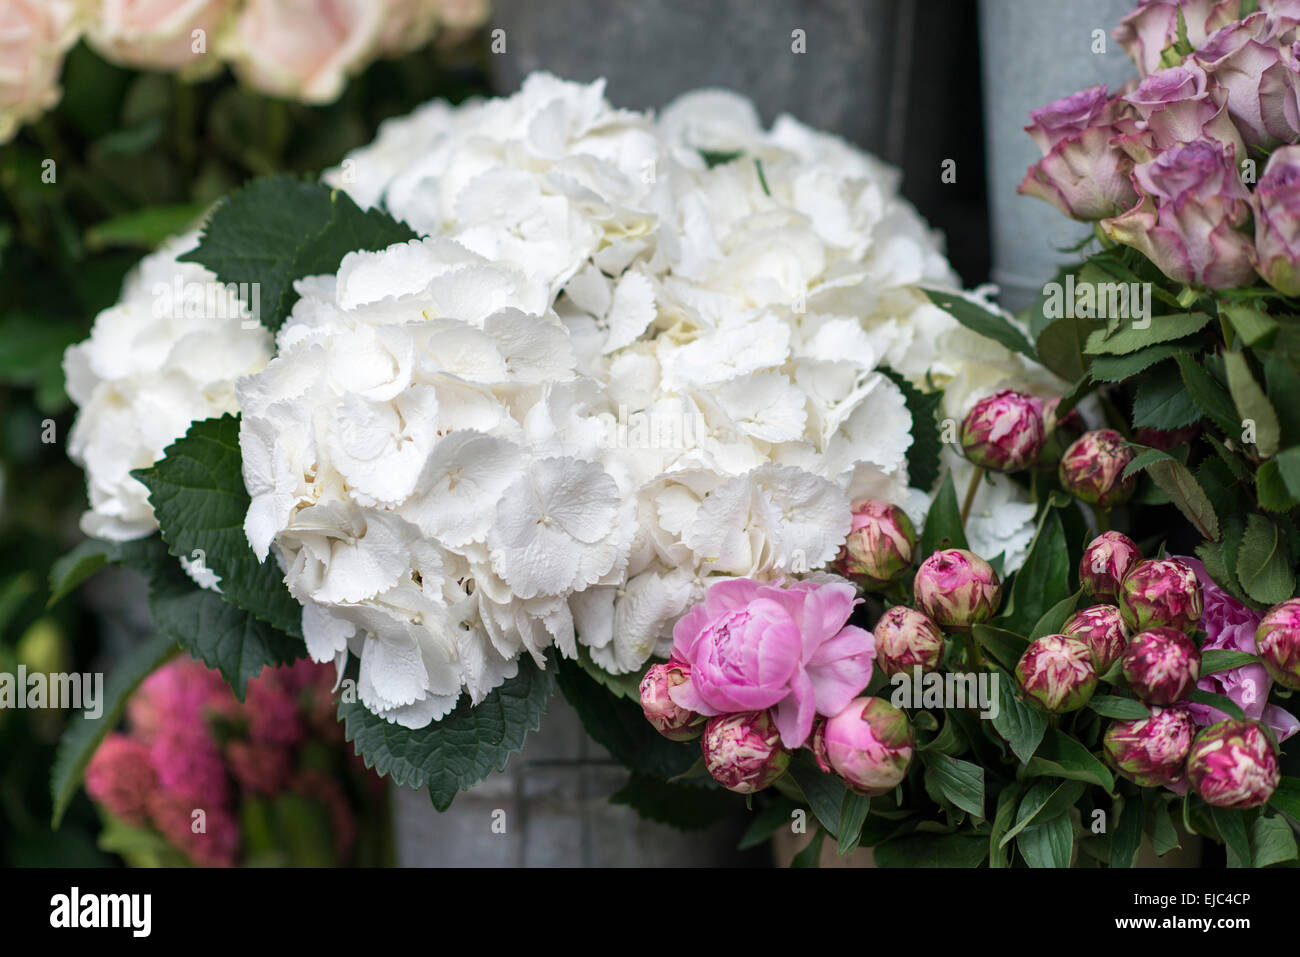 Flower Buckets Stock Photos Flower Buckets Stock Images Alamy